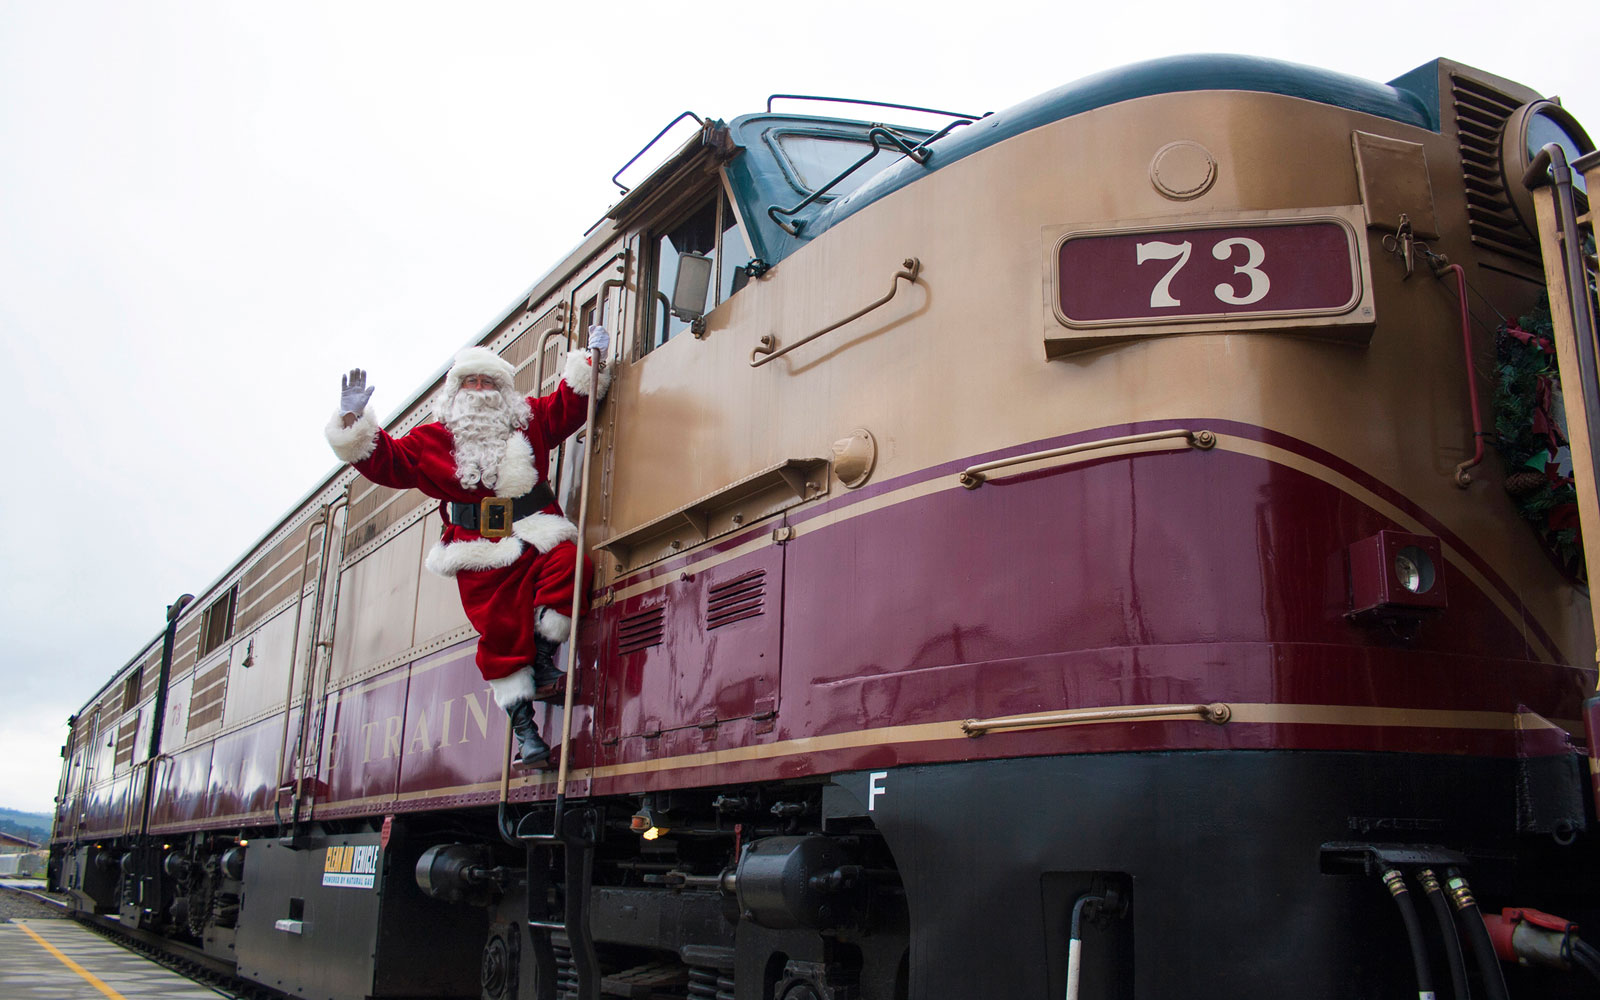 Napa Valley's Santa Train Combines Wine With Festive Holiday Cheer